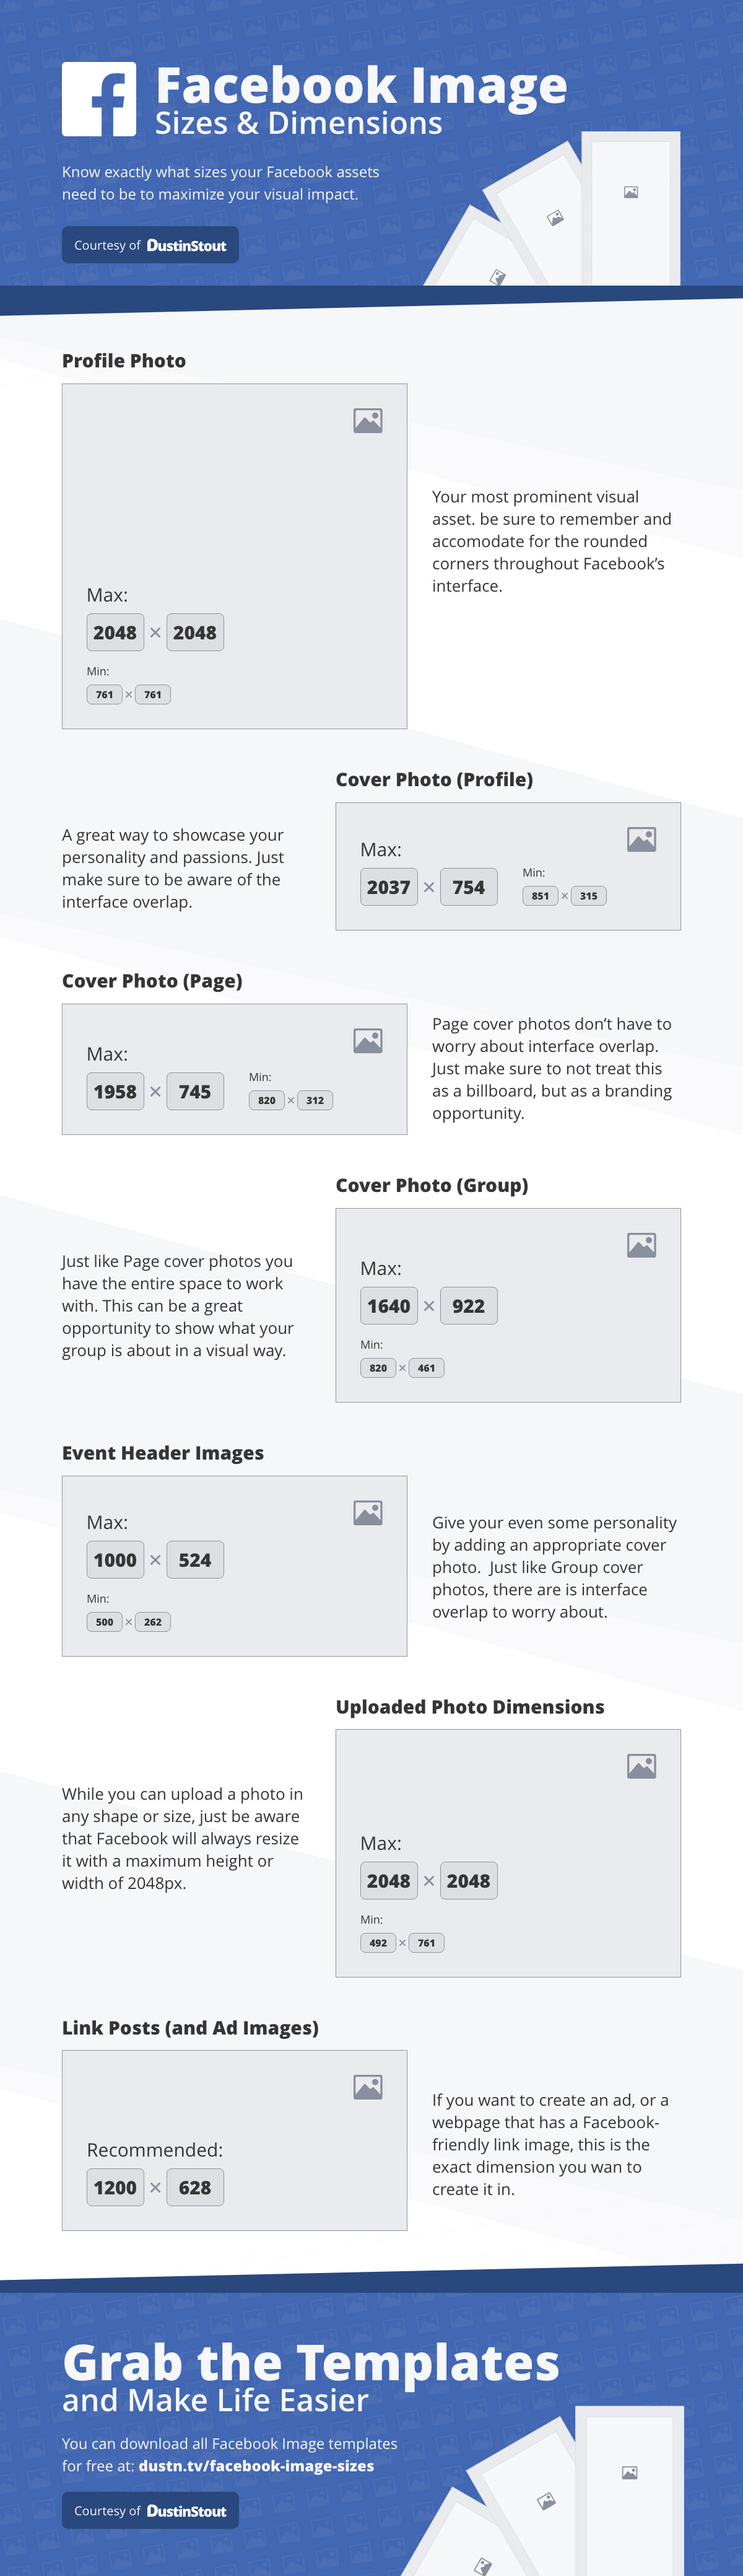 Facebook Image Sizes & Dimensions 2019: Everything You Need